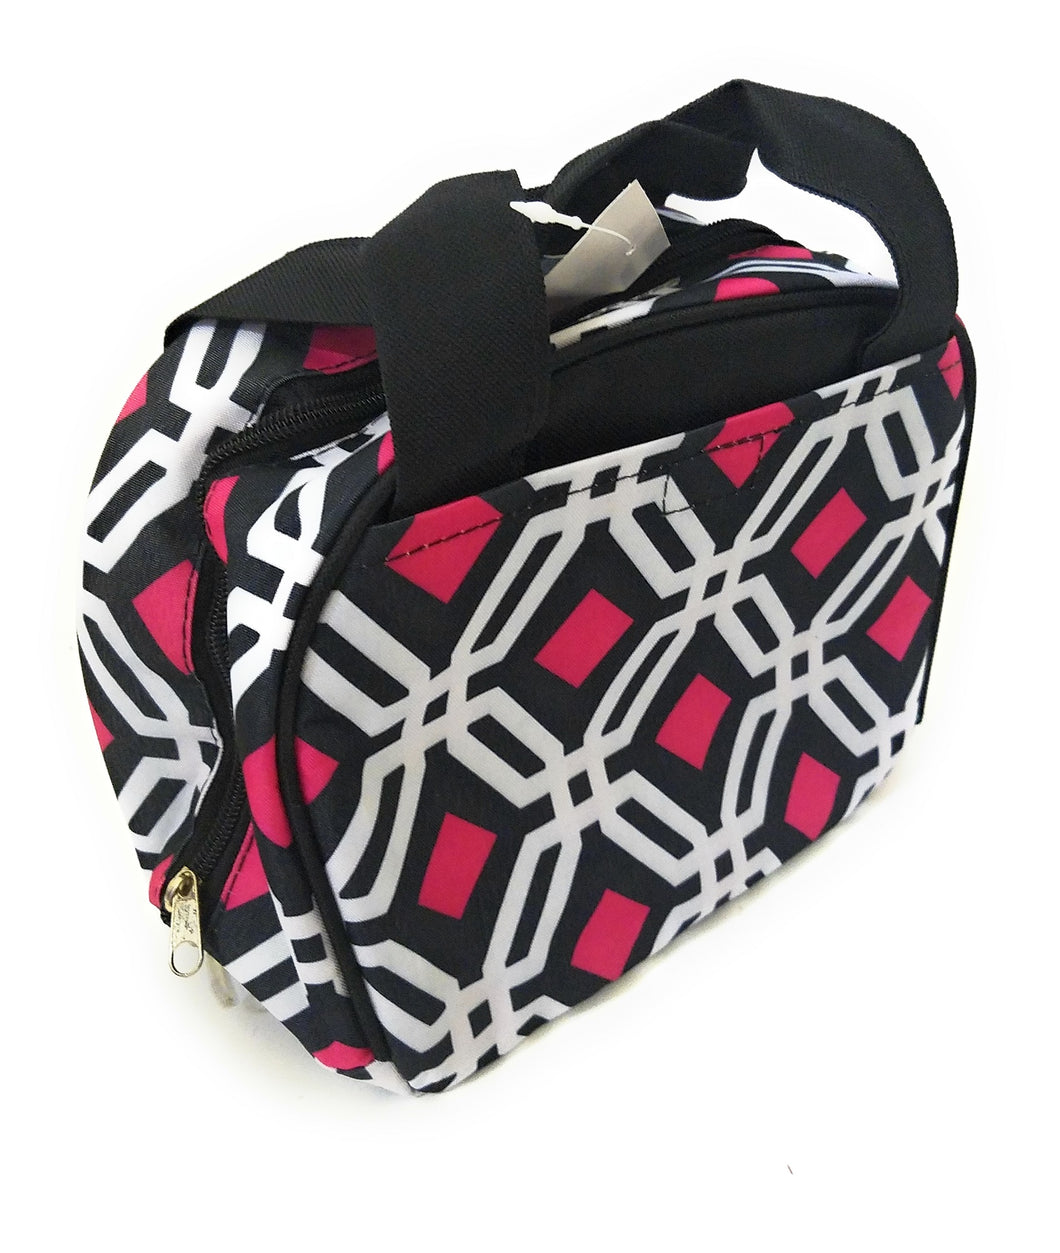 Geometric Aztec Insulated School Work Camp Travel Lunch Box Bag Case Black Pink